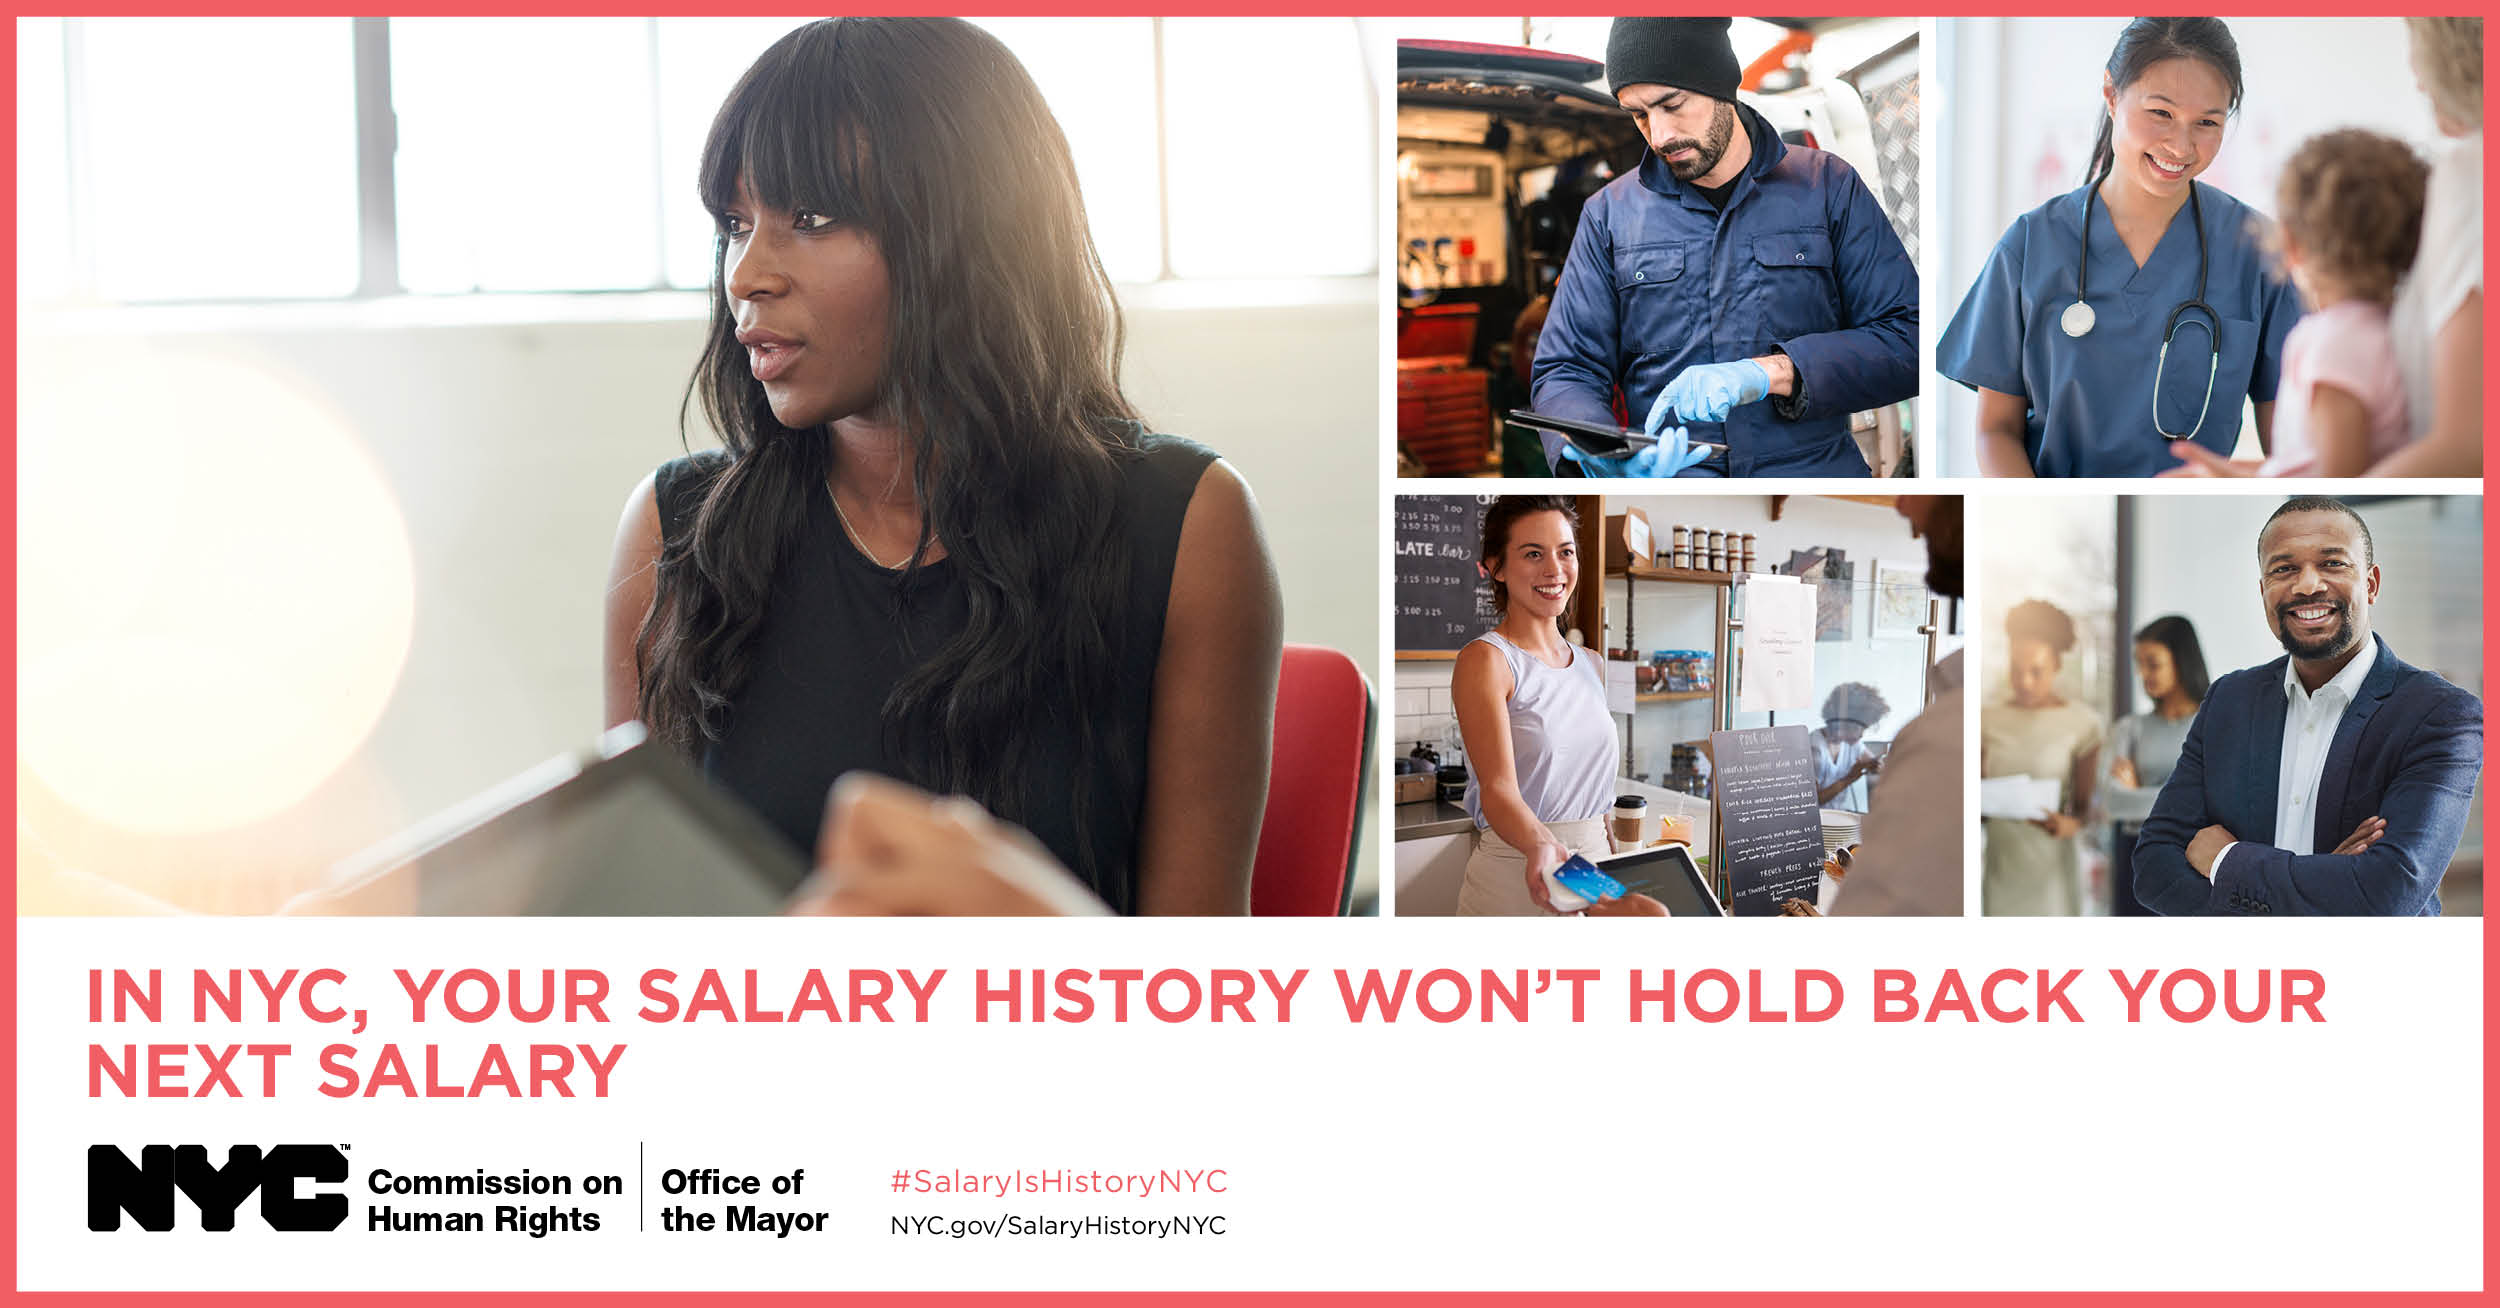 Effective Oct 31 2017 It Became Illegal For Public And Private Employers Of Any Size In New York City To Ask About An Applicants Salary History During